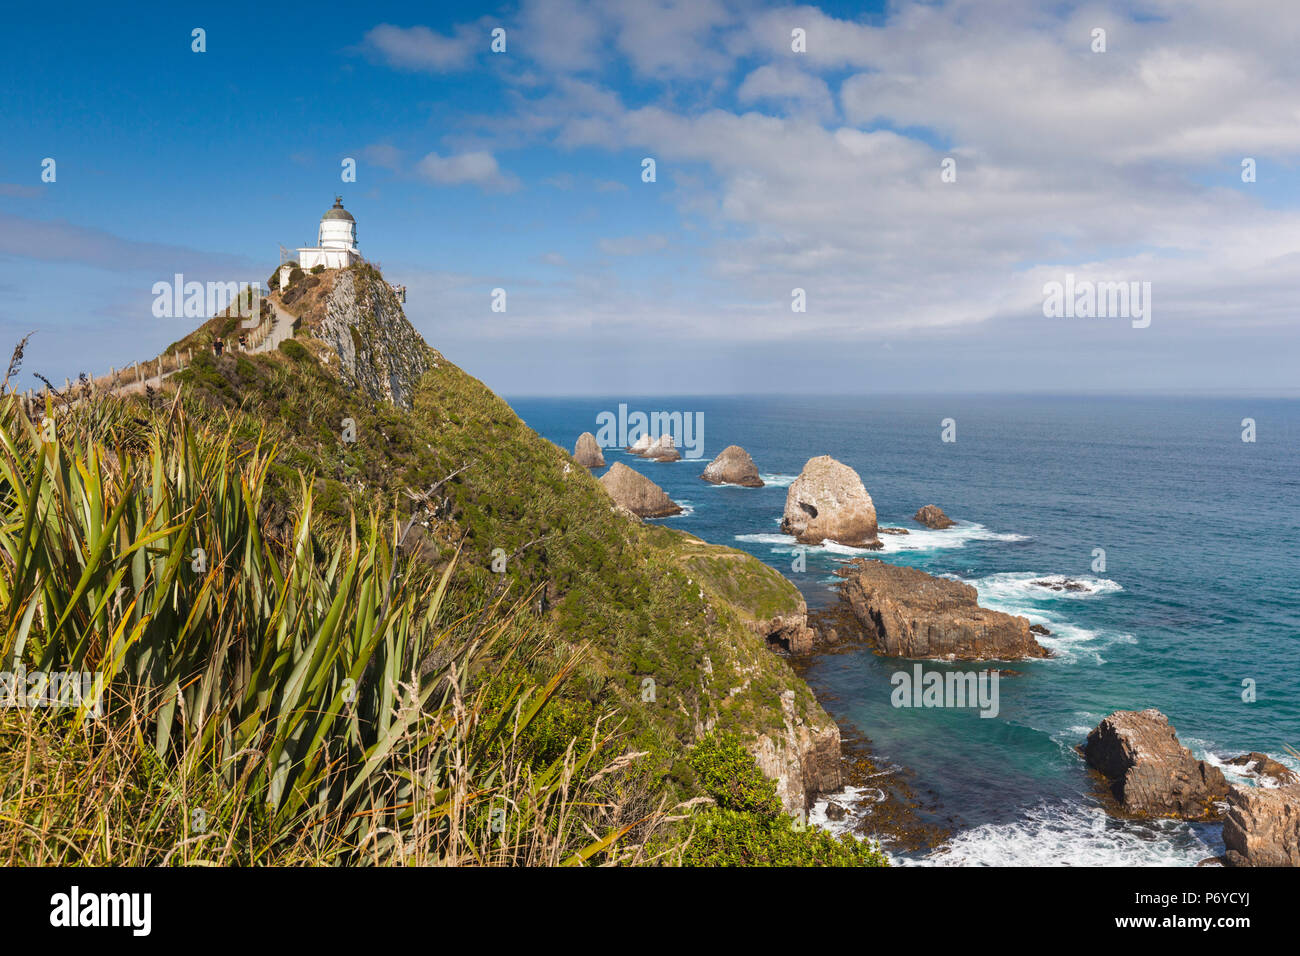 Neuseeland, Südinsel, Southland, The Catlins, Nugget Point, Nuggett Point LIghthouse, erhöht, Ansicht Stockbild